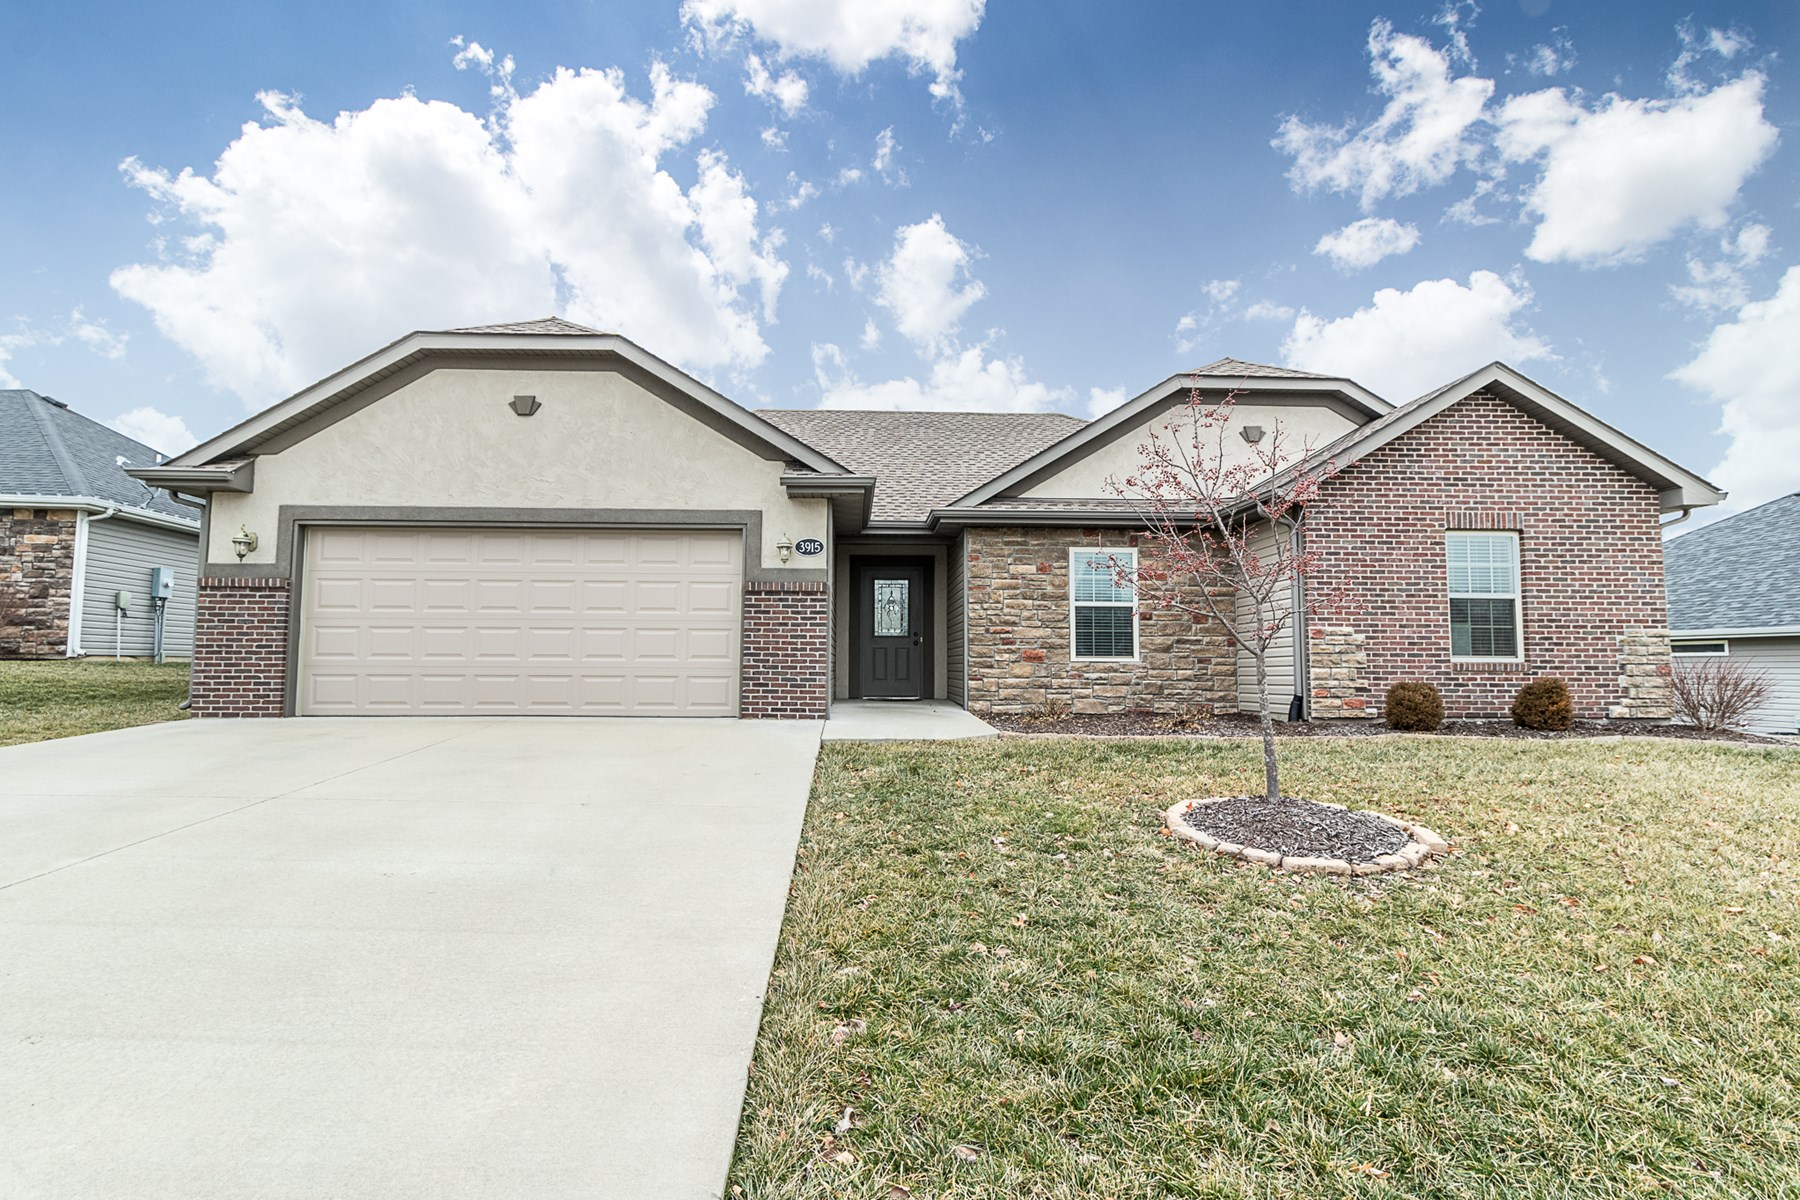 3 Bedroom, 2 Bath Home in Columbia Public Schools, MO